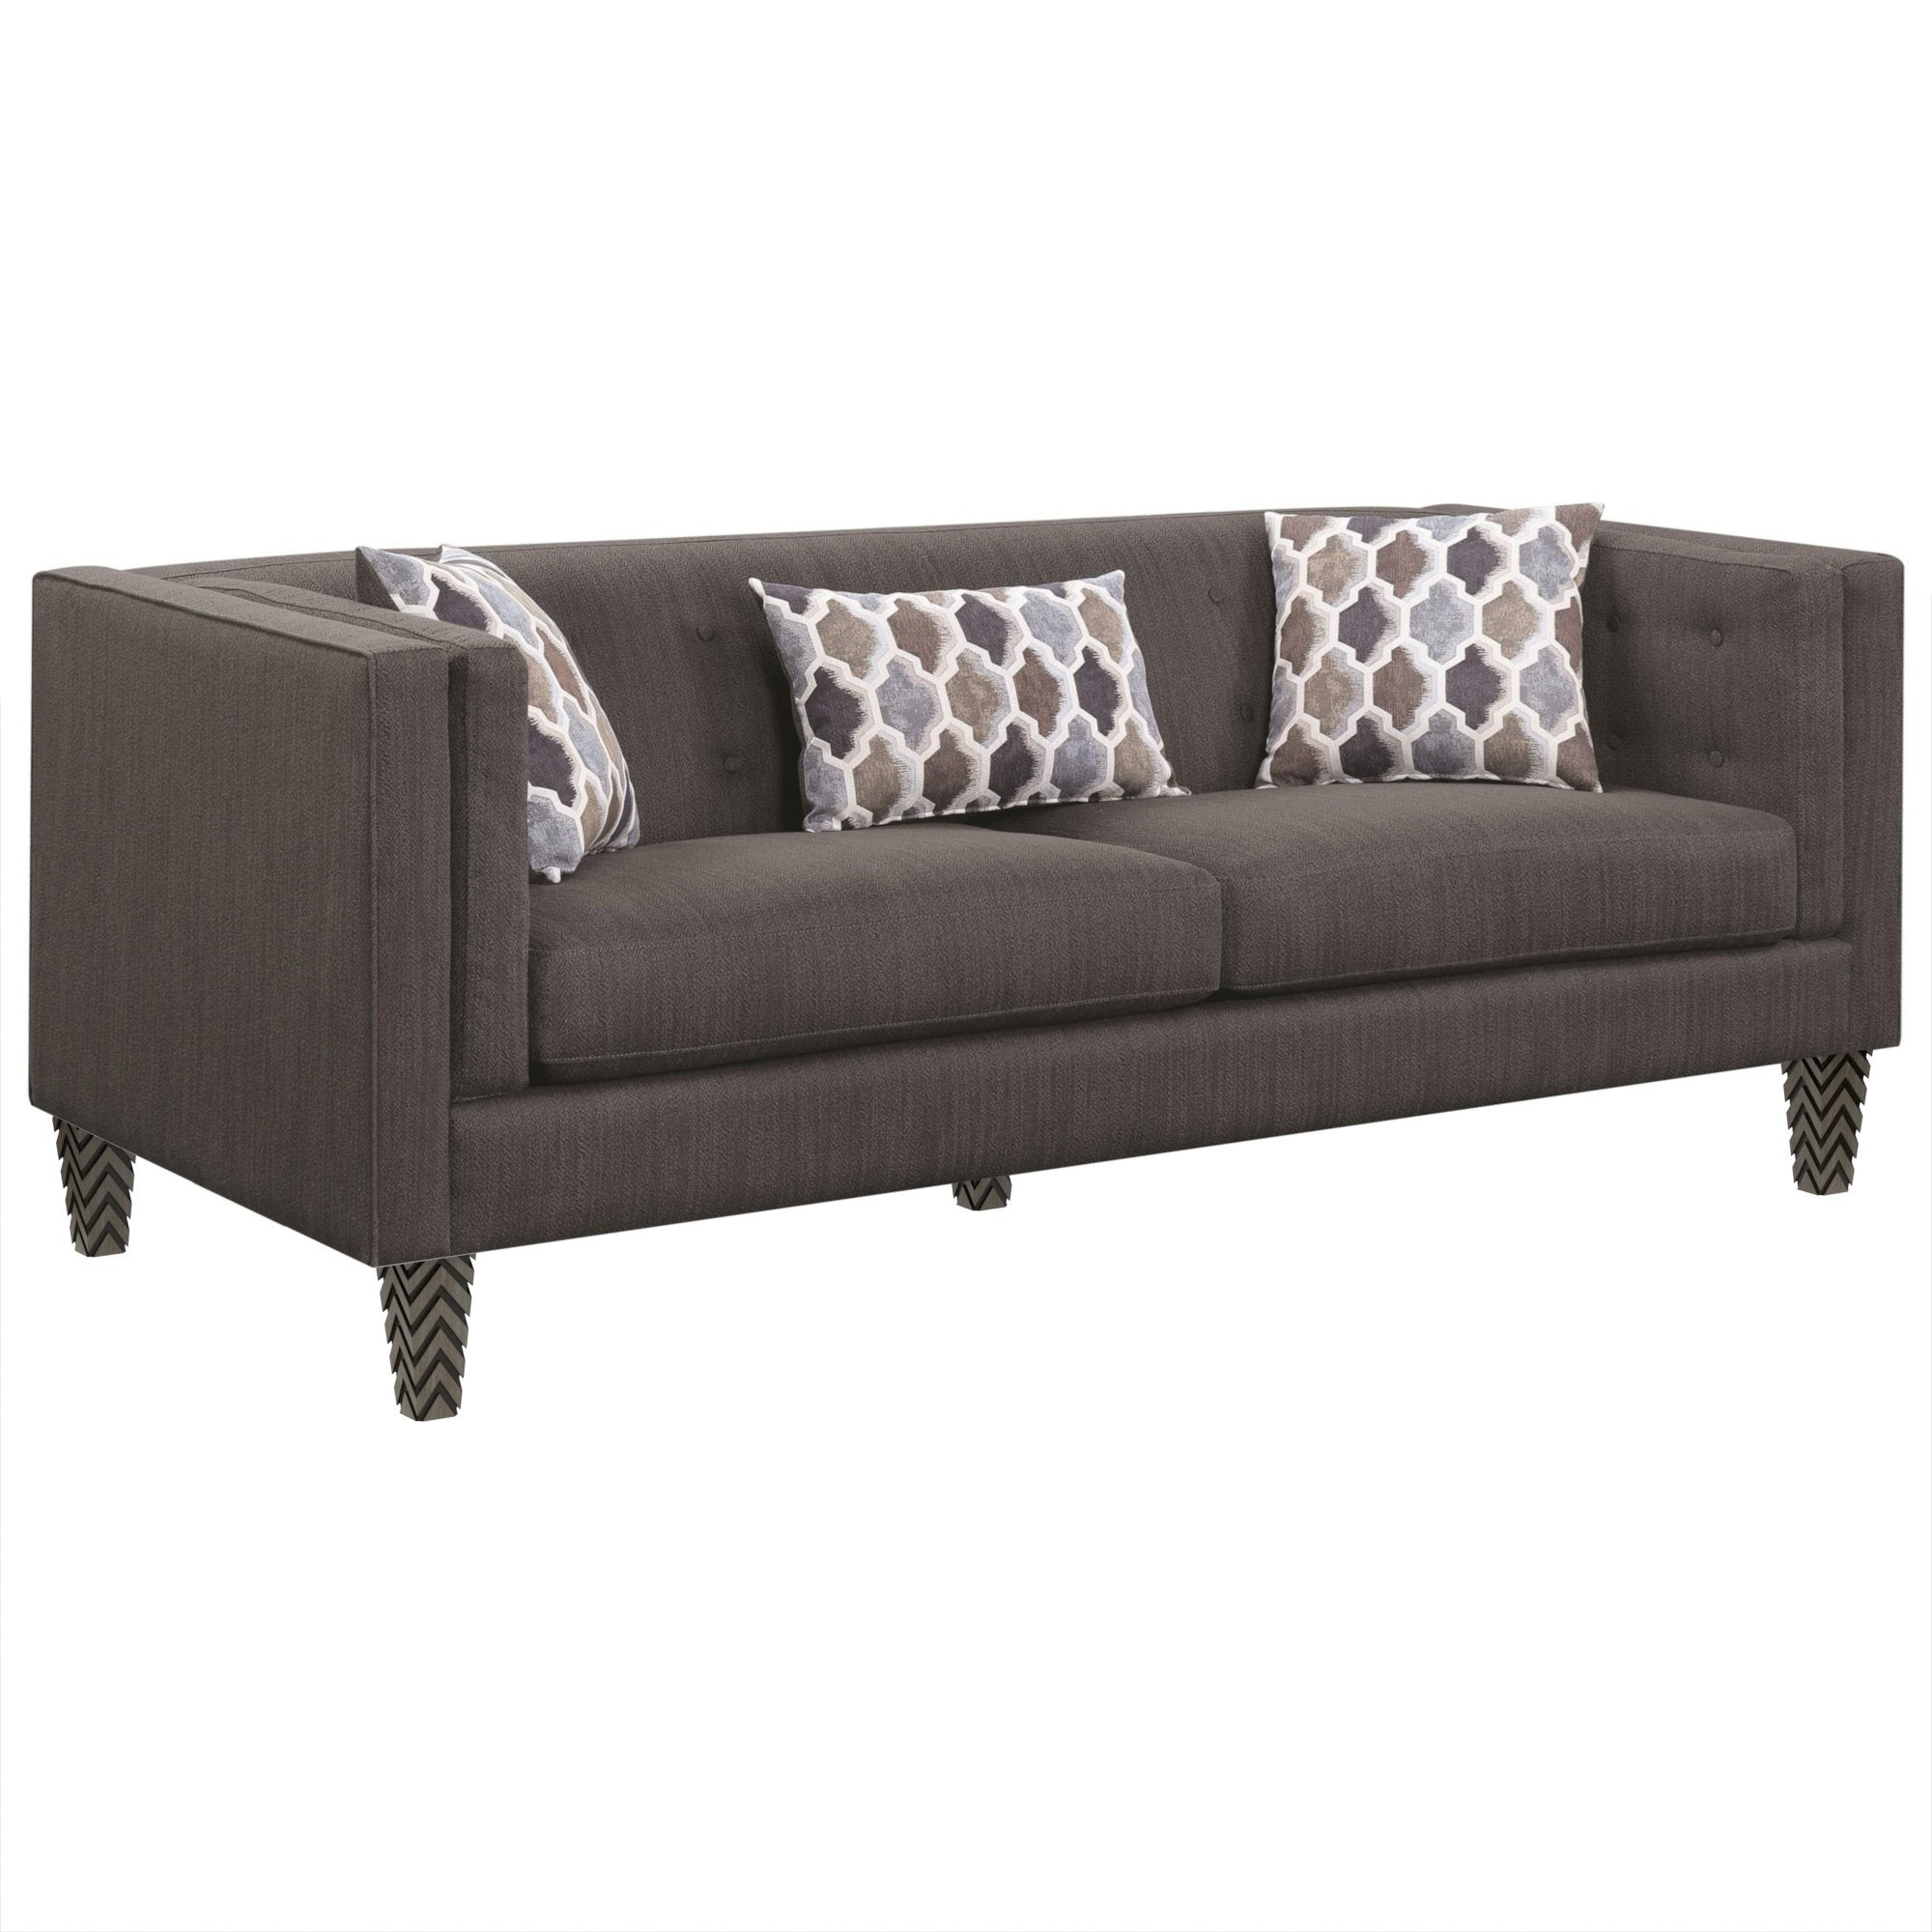 "Santi Tufted Gray Sofa with Geometric Pillows (81"")"